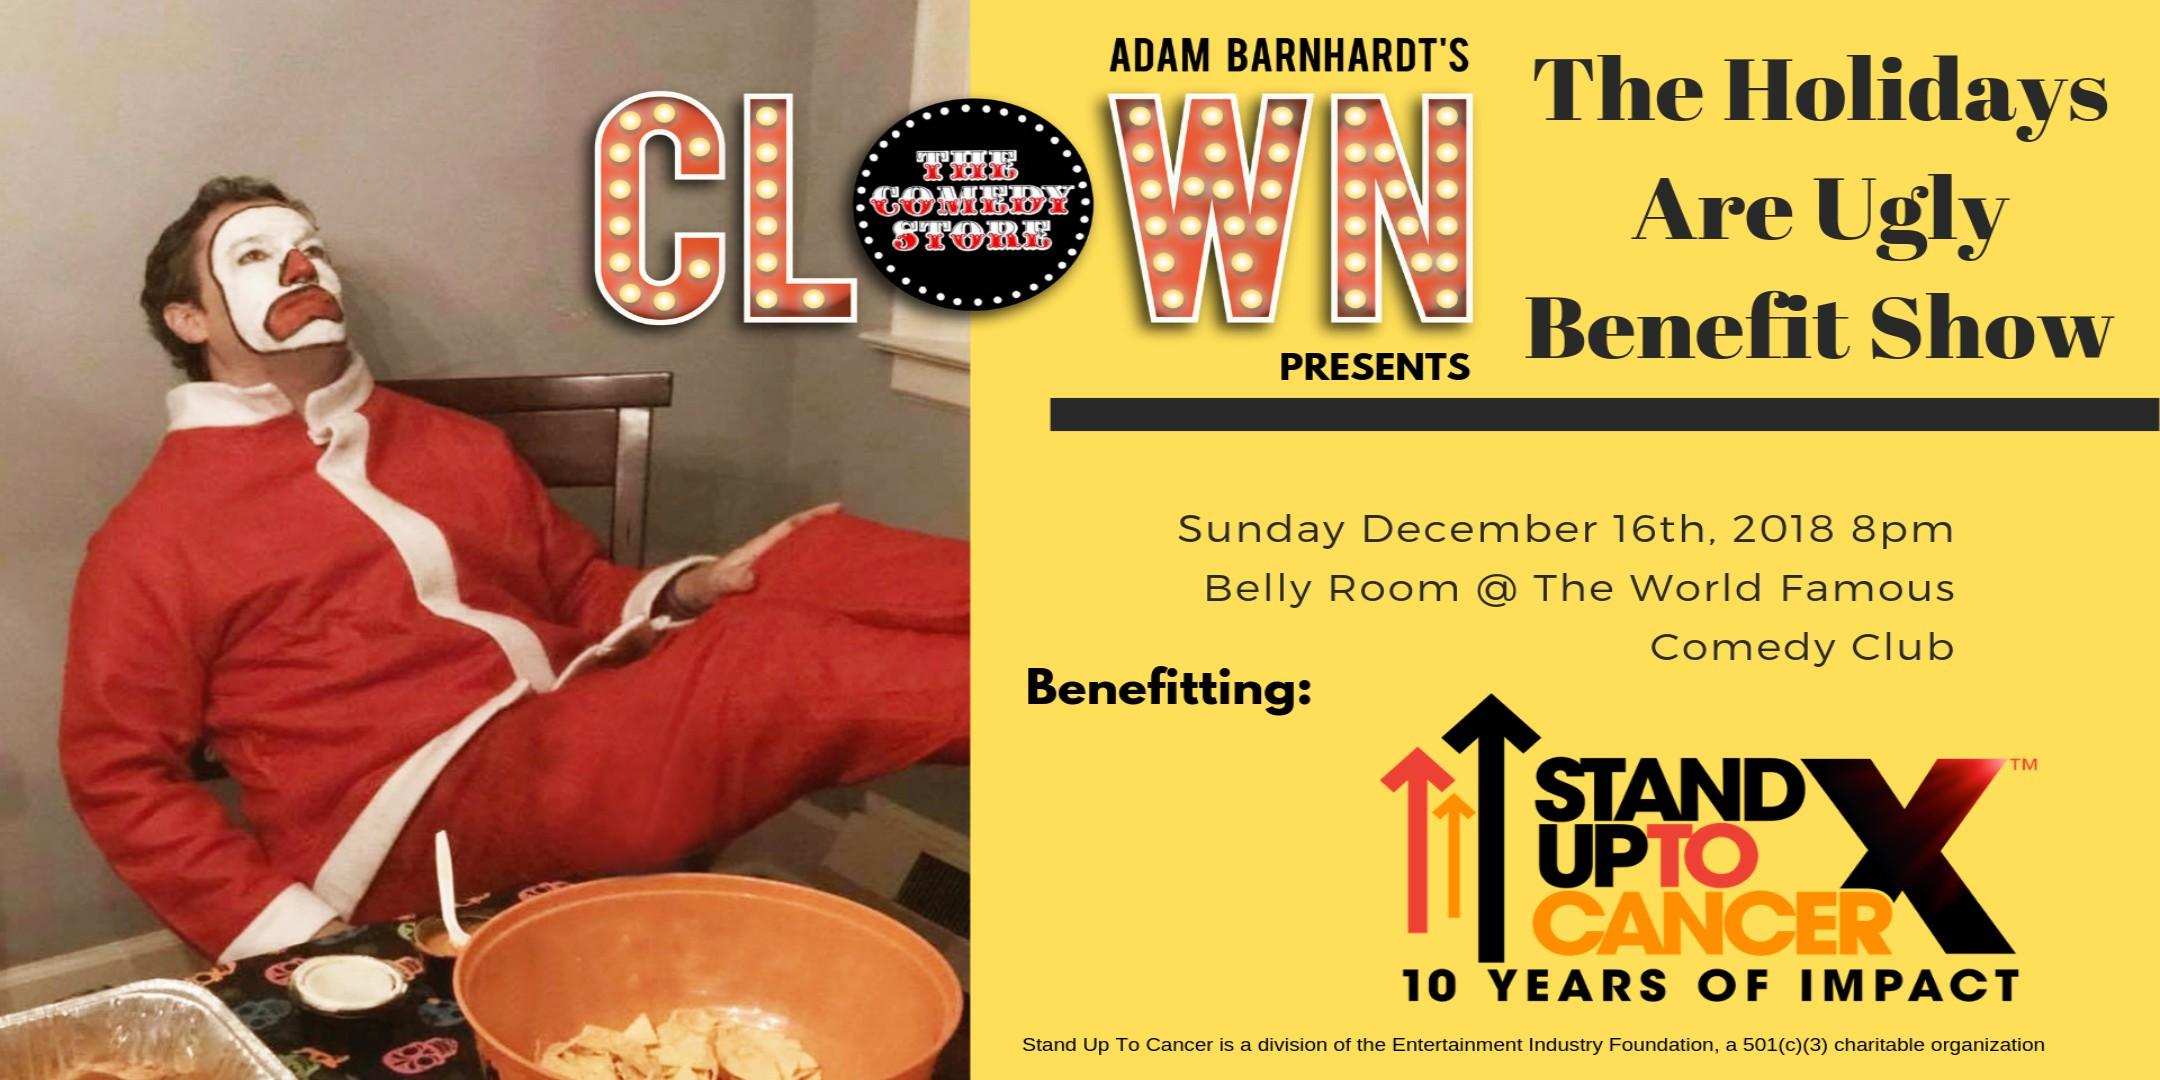 Clown-Stand Up 2 Cancer Benefit